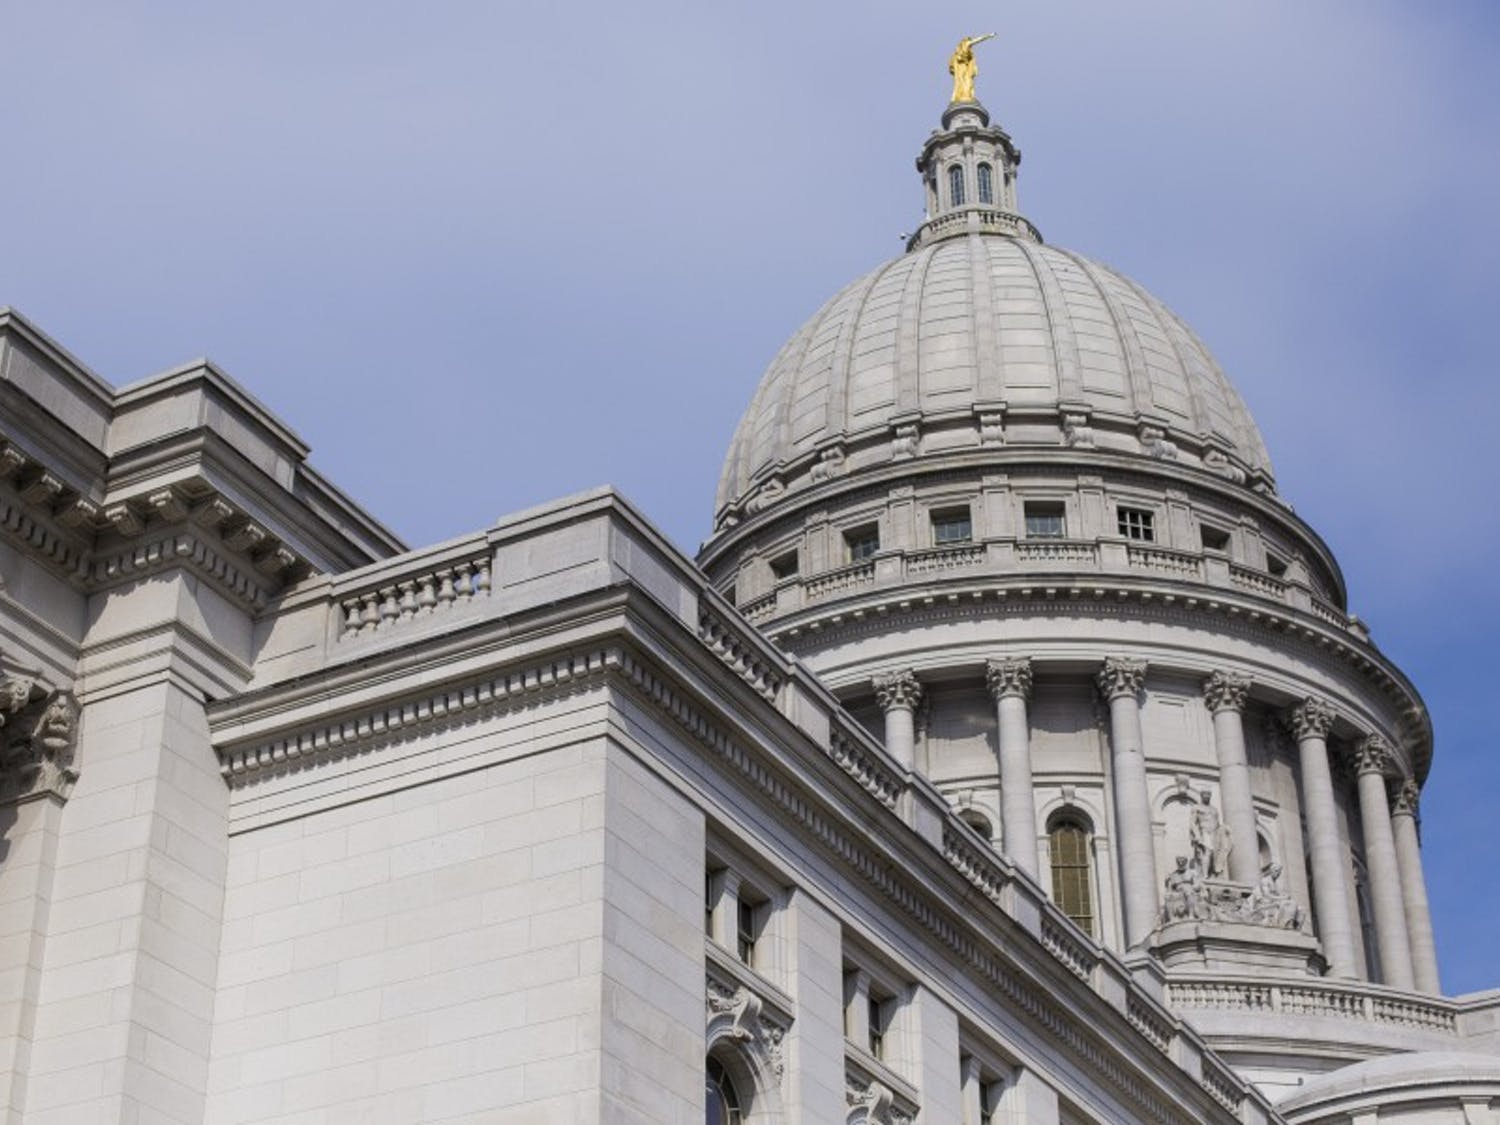 Legislators passed a pair of bills this week intended to curtail homelessness as the winter approaches.